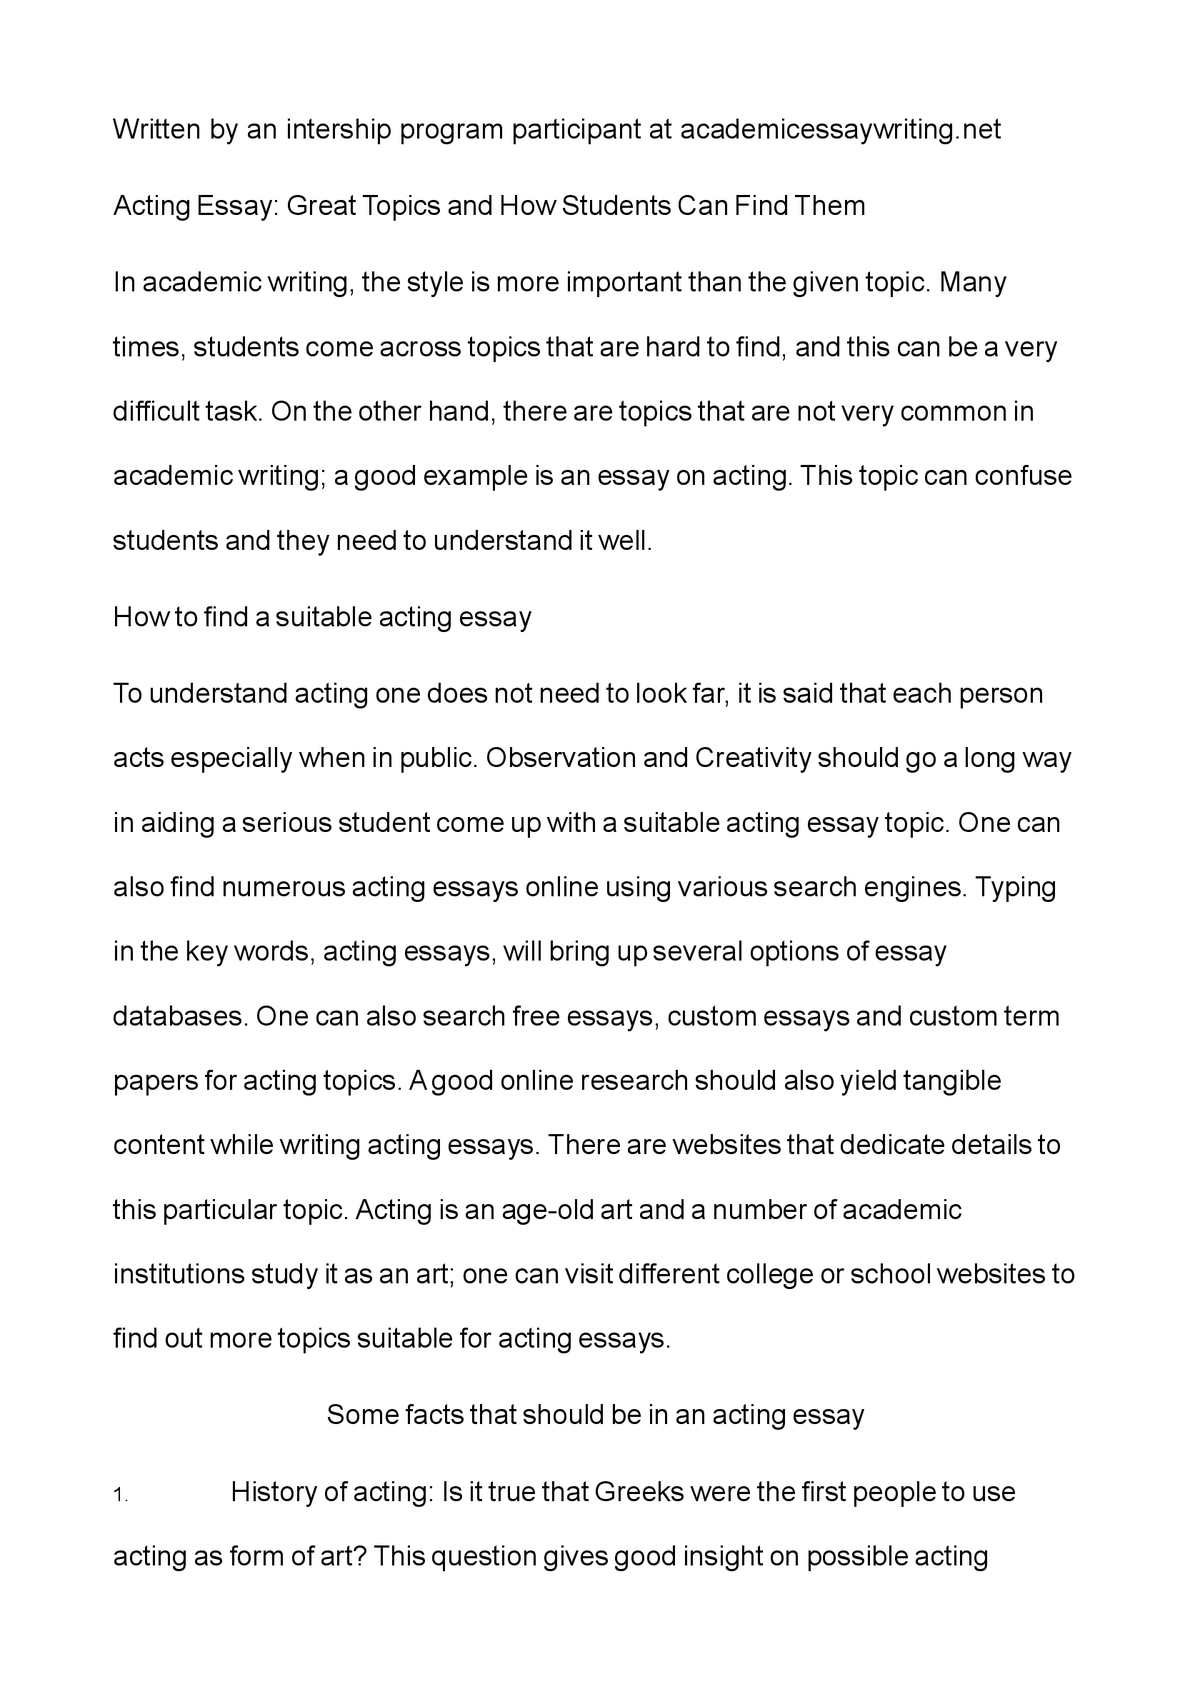 Free essays search sample problem statement for dissertation